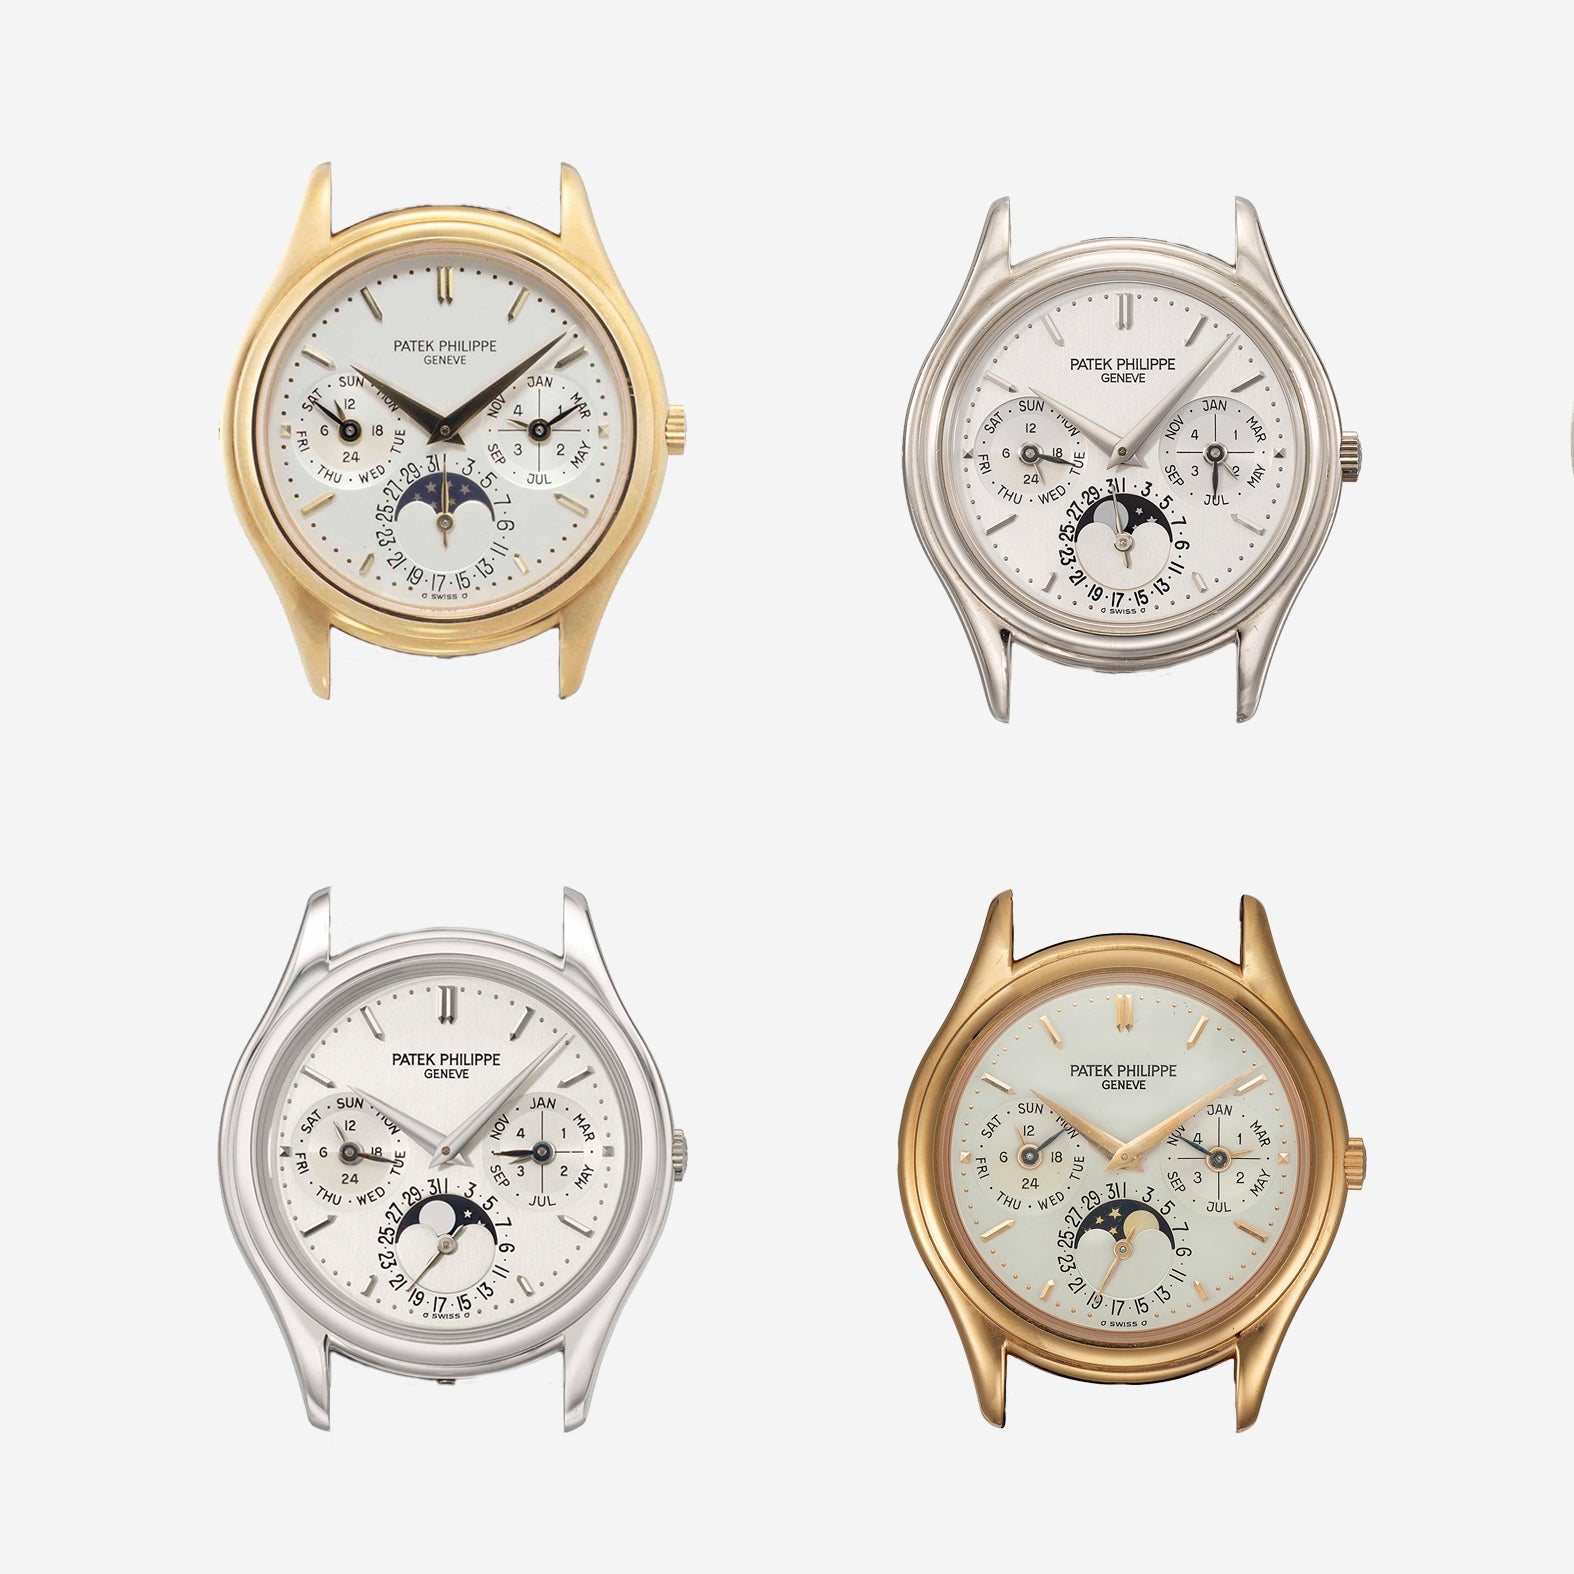 Patek Philippe 3940 in all metal vartiations, yellow gold, white gold, rose gold and platinum